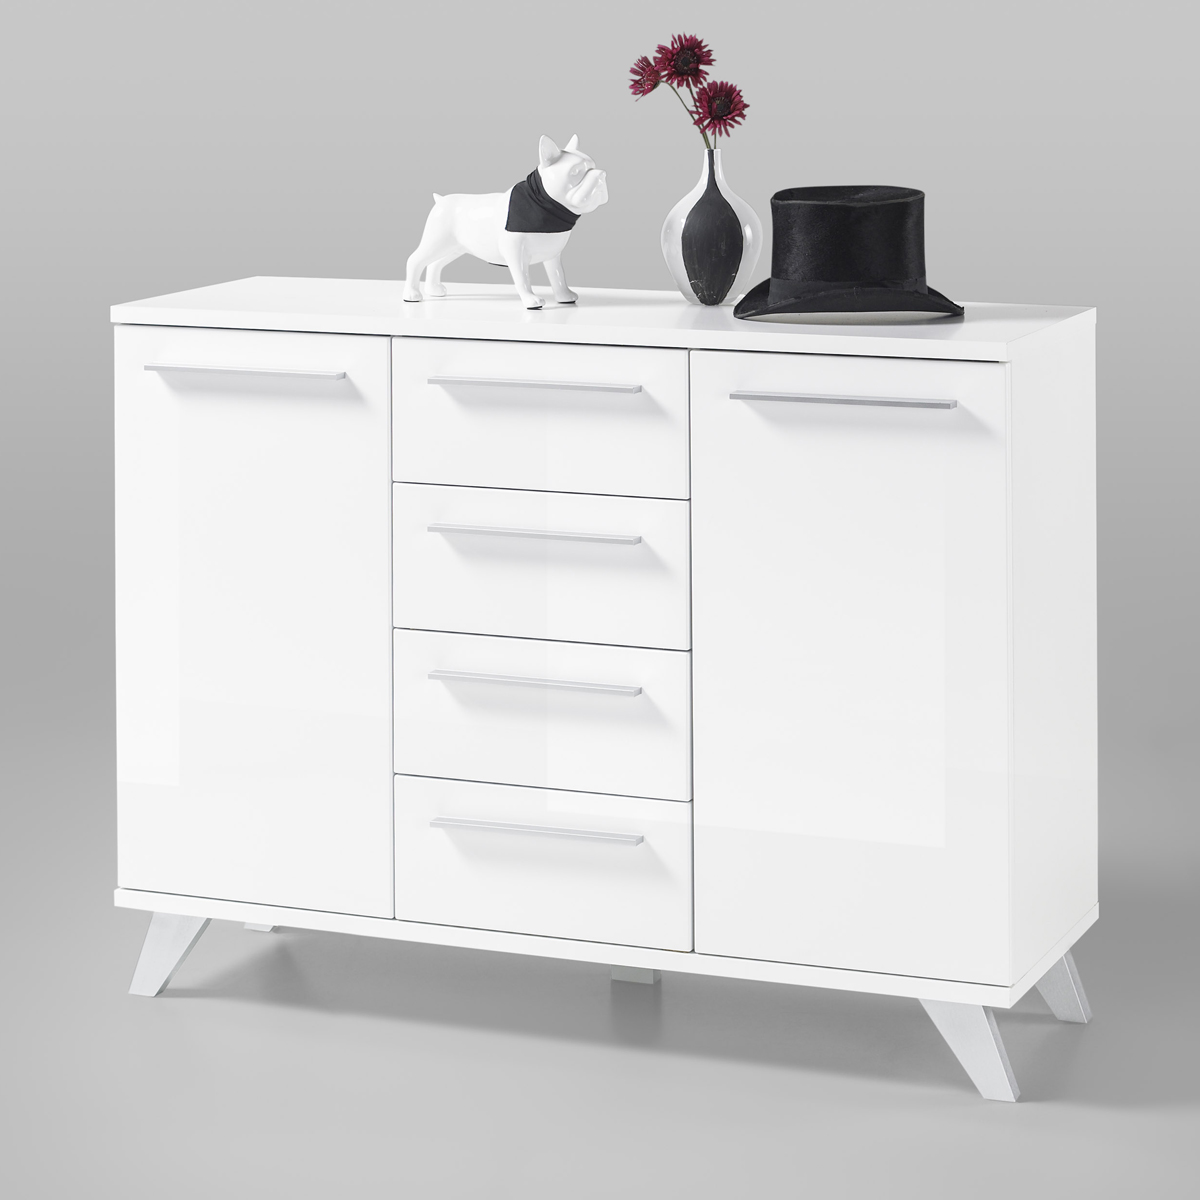 kommode north in wei hochglanz 120cm breit sideboard anrichte stauraumelement ebay. Black Bedroom Furniture Sets. Home Design Ideas